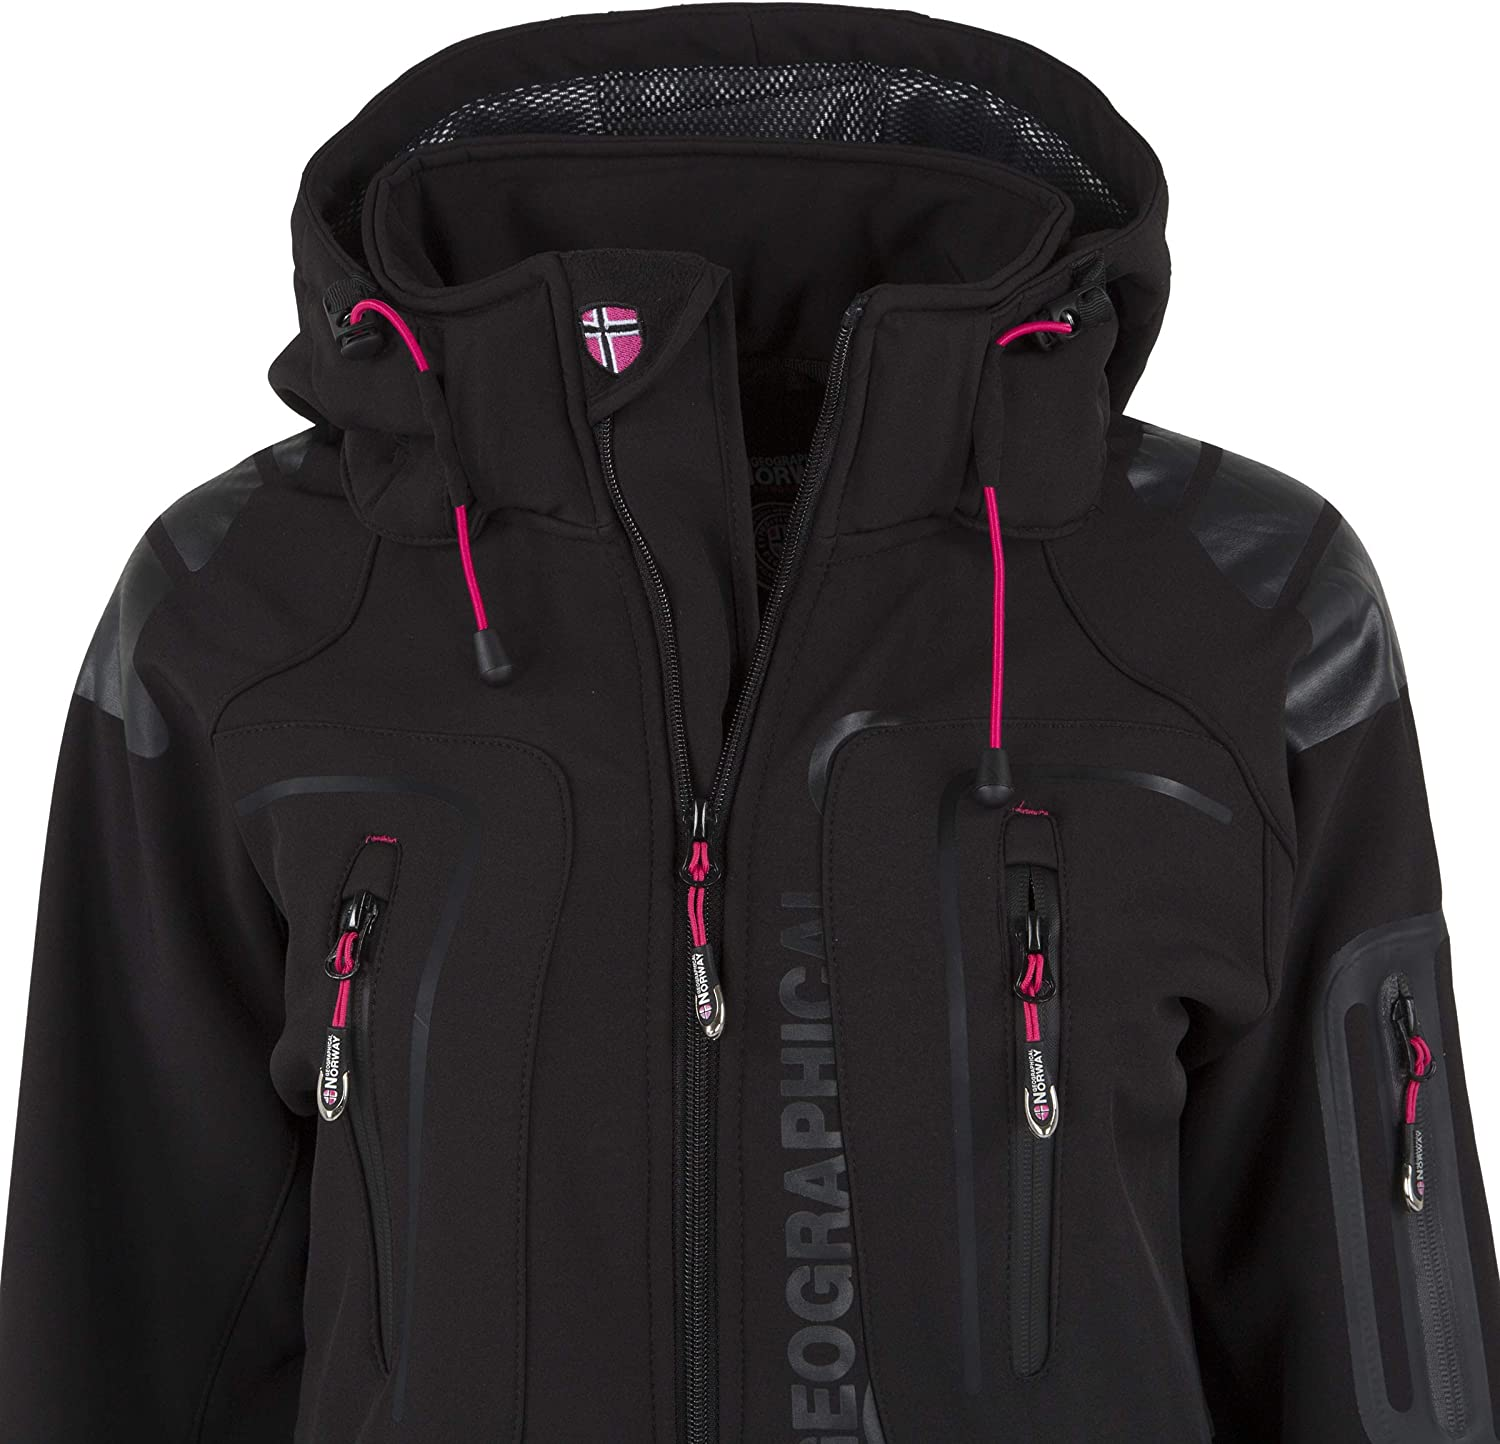 Geographical Norway Damen Softshell Outdoor Jacke Tassion abnehmbare Kapuze